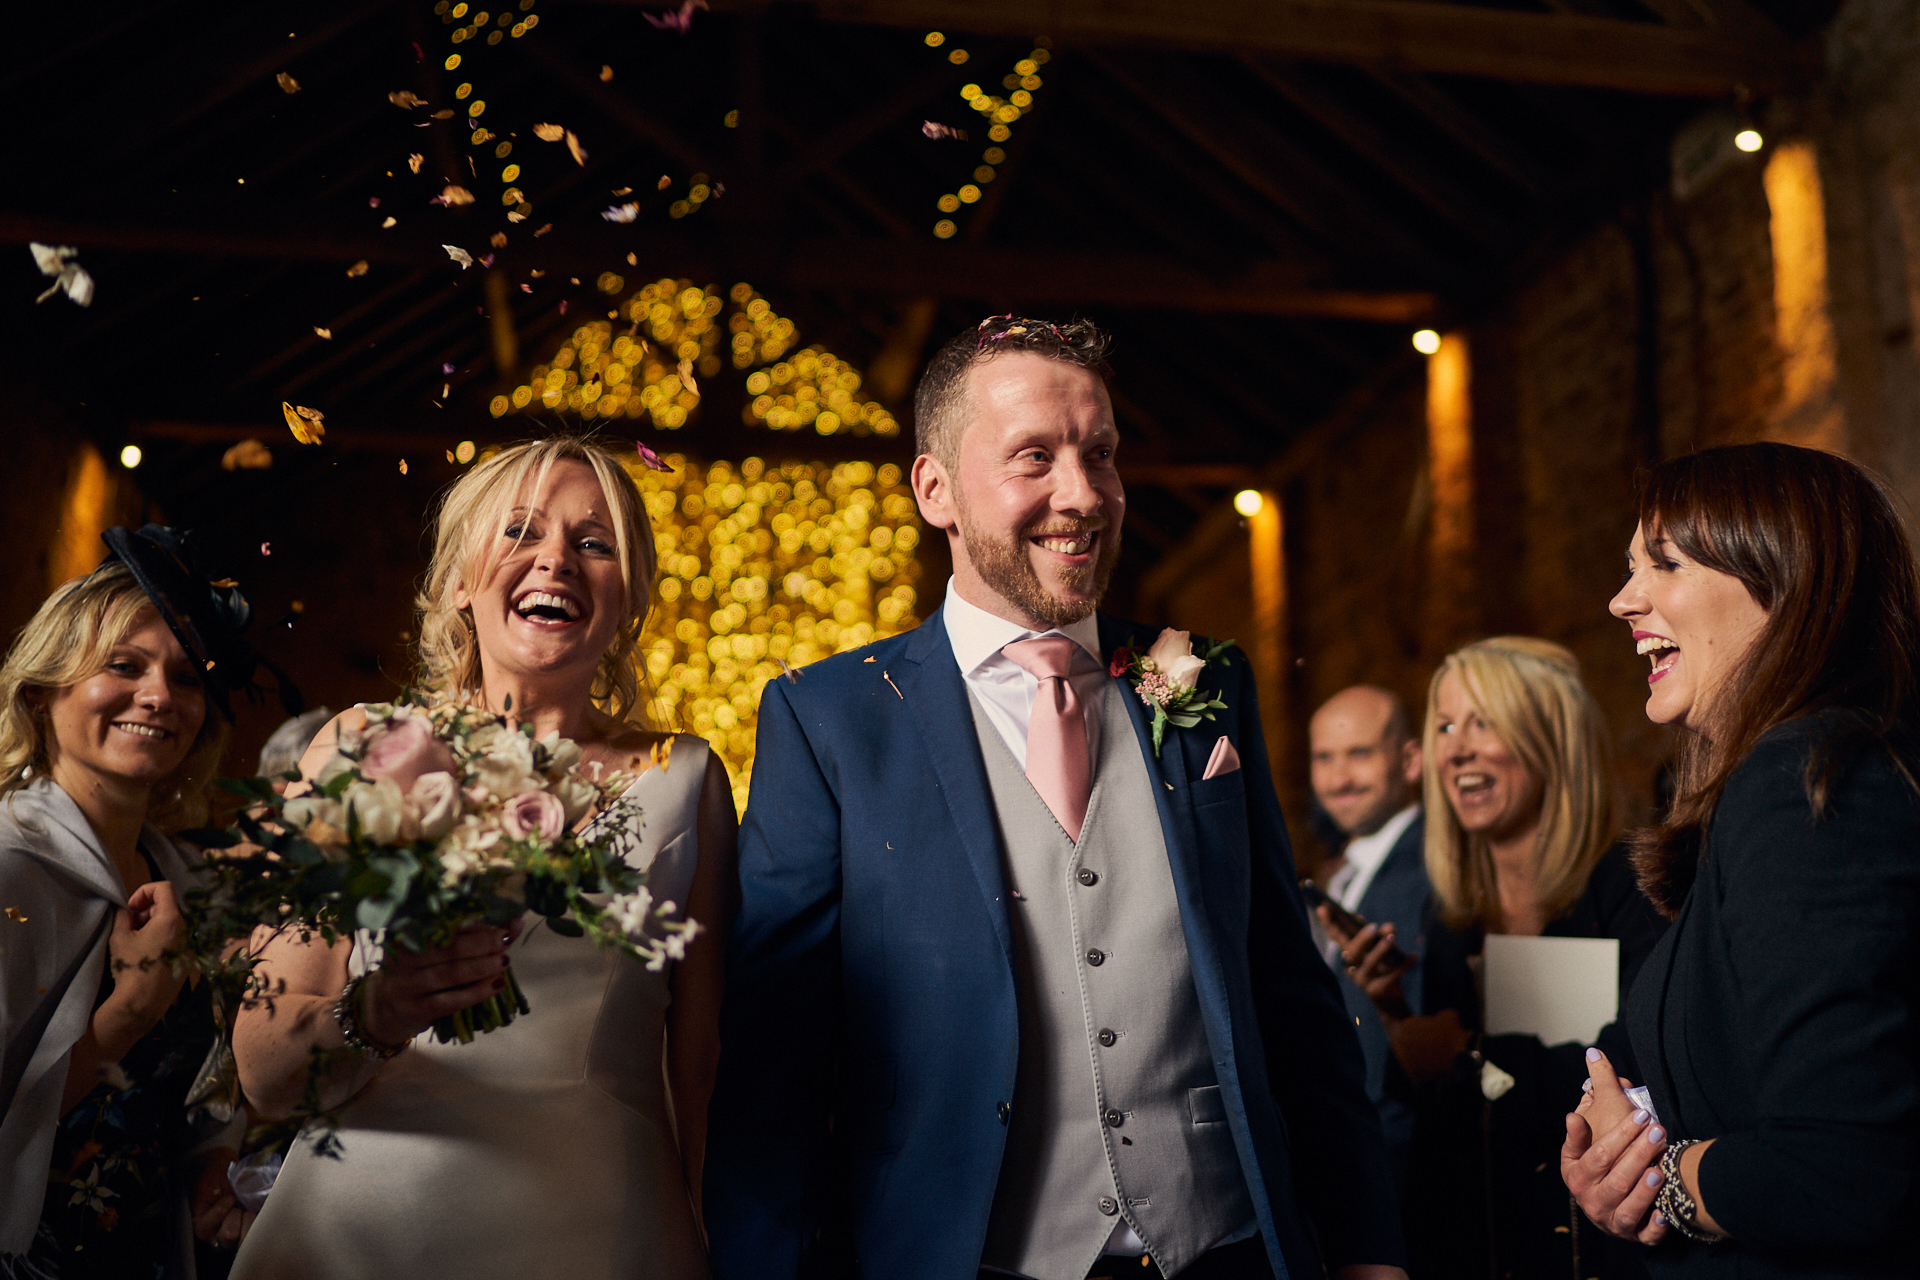 Bride & Groom leave the Ceremony Barn at The Normans in a shower of confetti